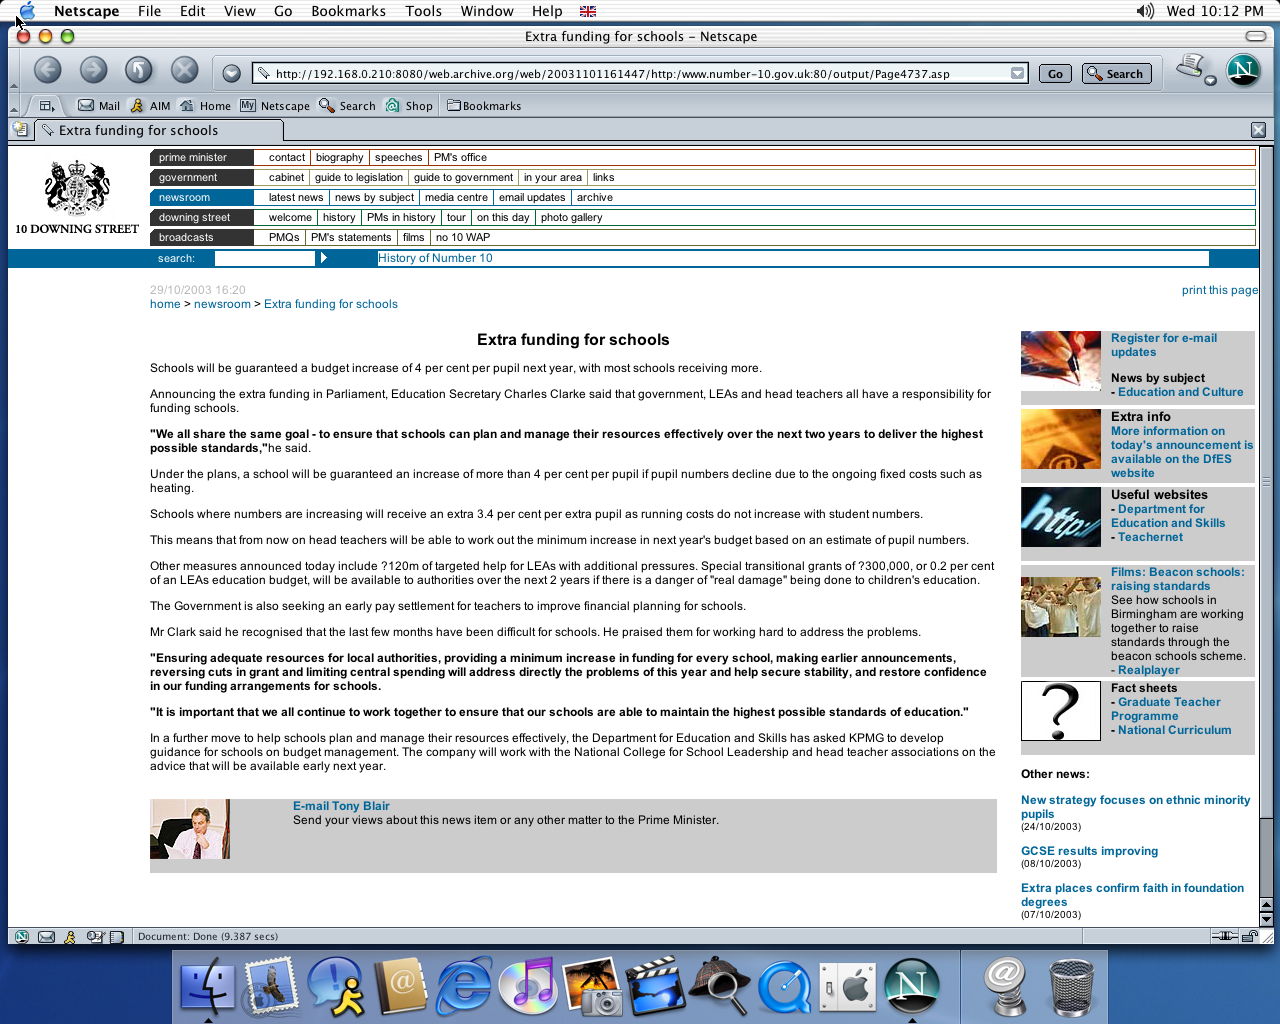 OS X 10.2 PPC with Netscape 7.0 displaying a page from Office of the Prime Minister archived at November 01, 2003 at 16:14:47